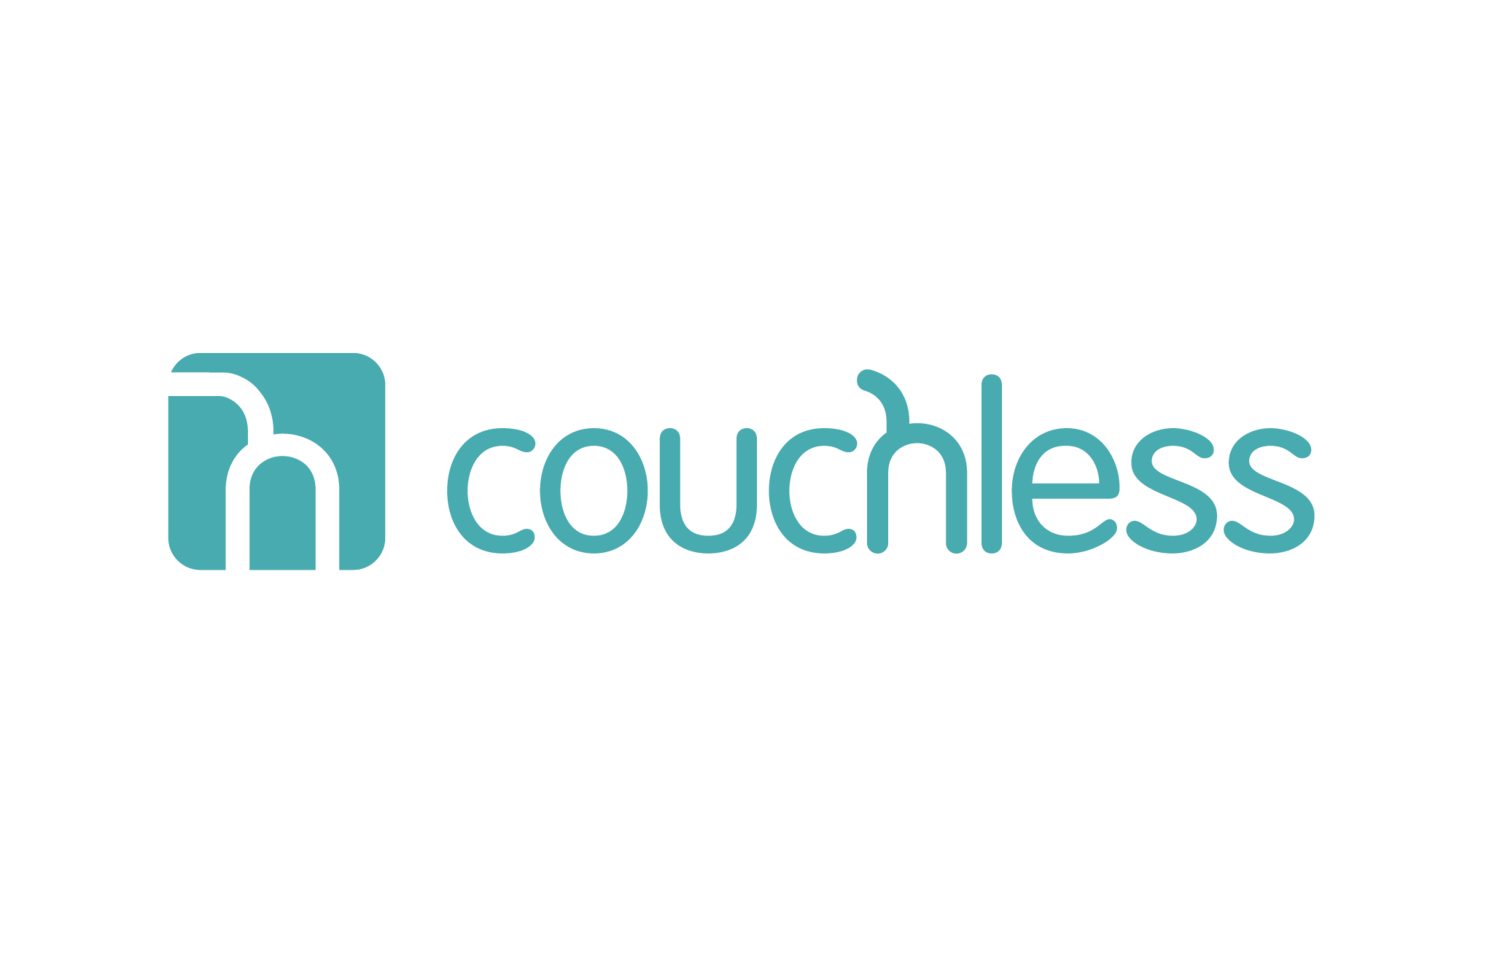 COUCHLESS